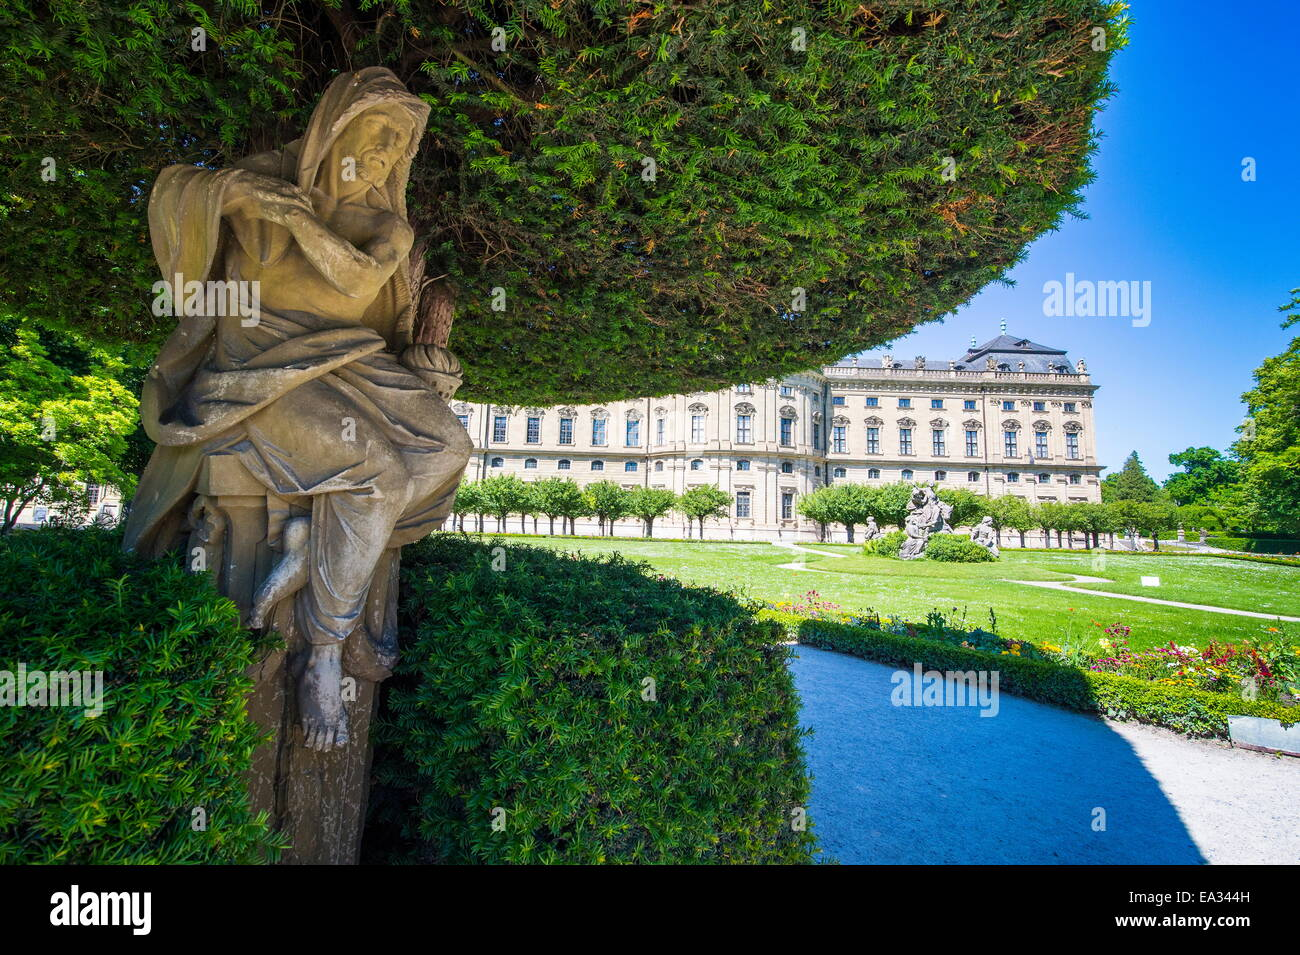 Statue under a tree in the Baroque gardens in the Wurzburg Residence, UNESCO Site, Wurzburg, Franconia, Bavaria, - Stock Image